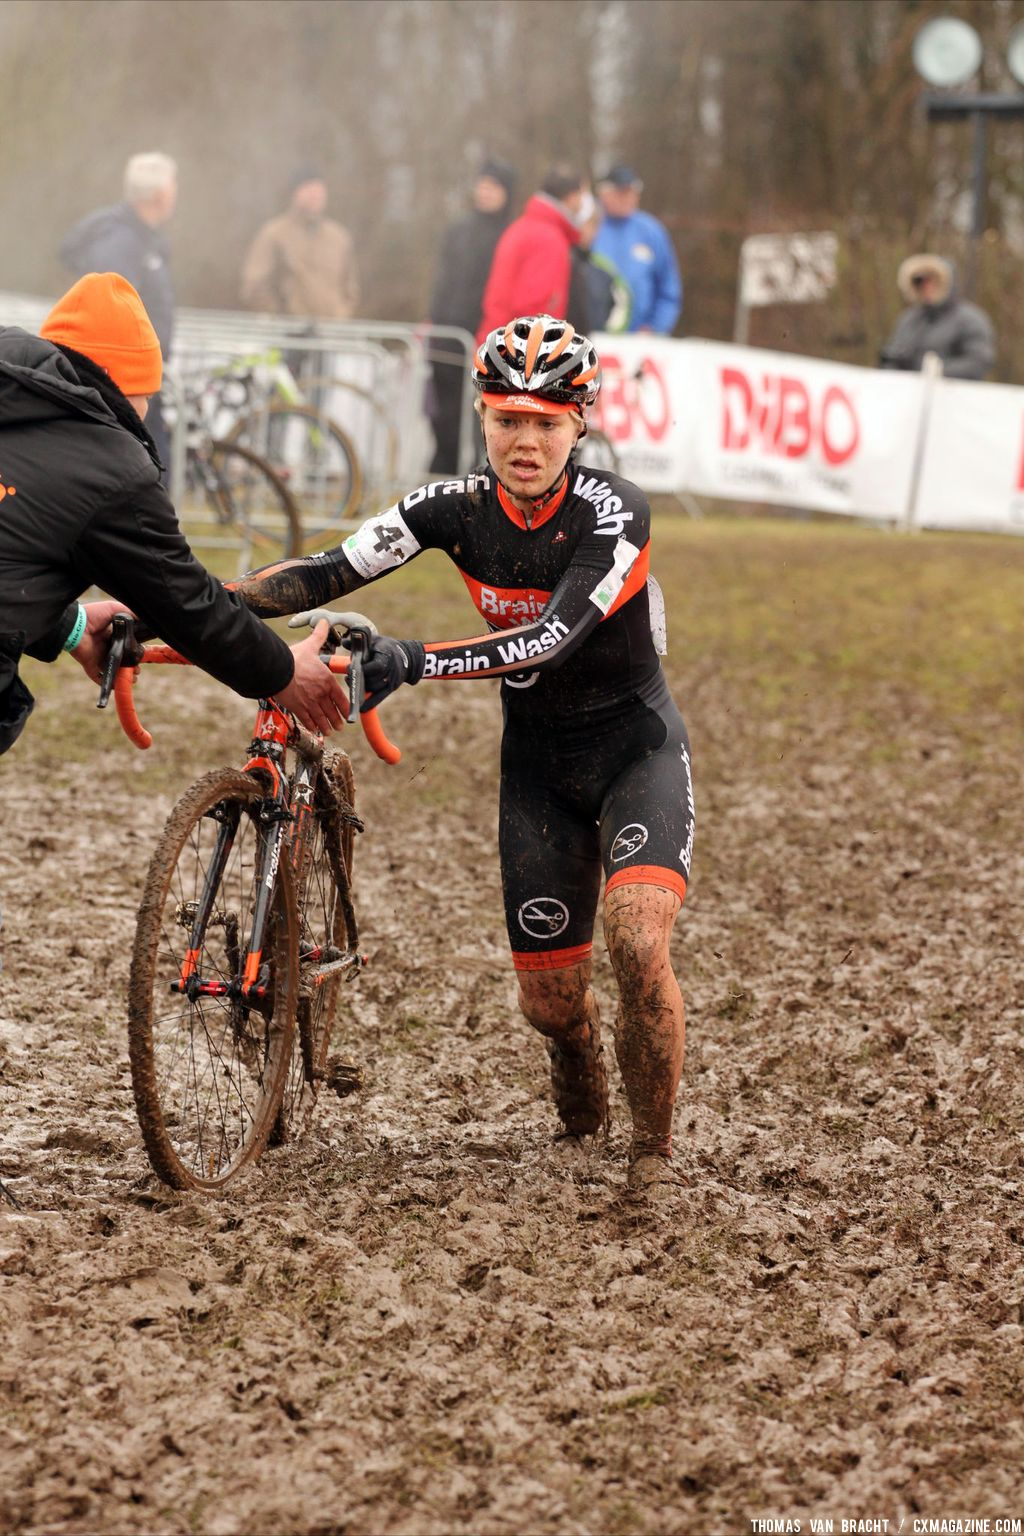 Elite women at Cauberg Cyclocross. © Thomas Van Bracht